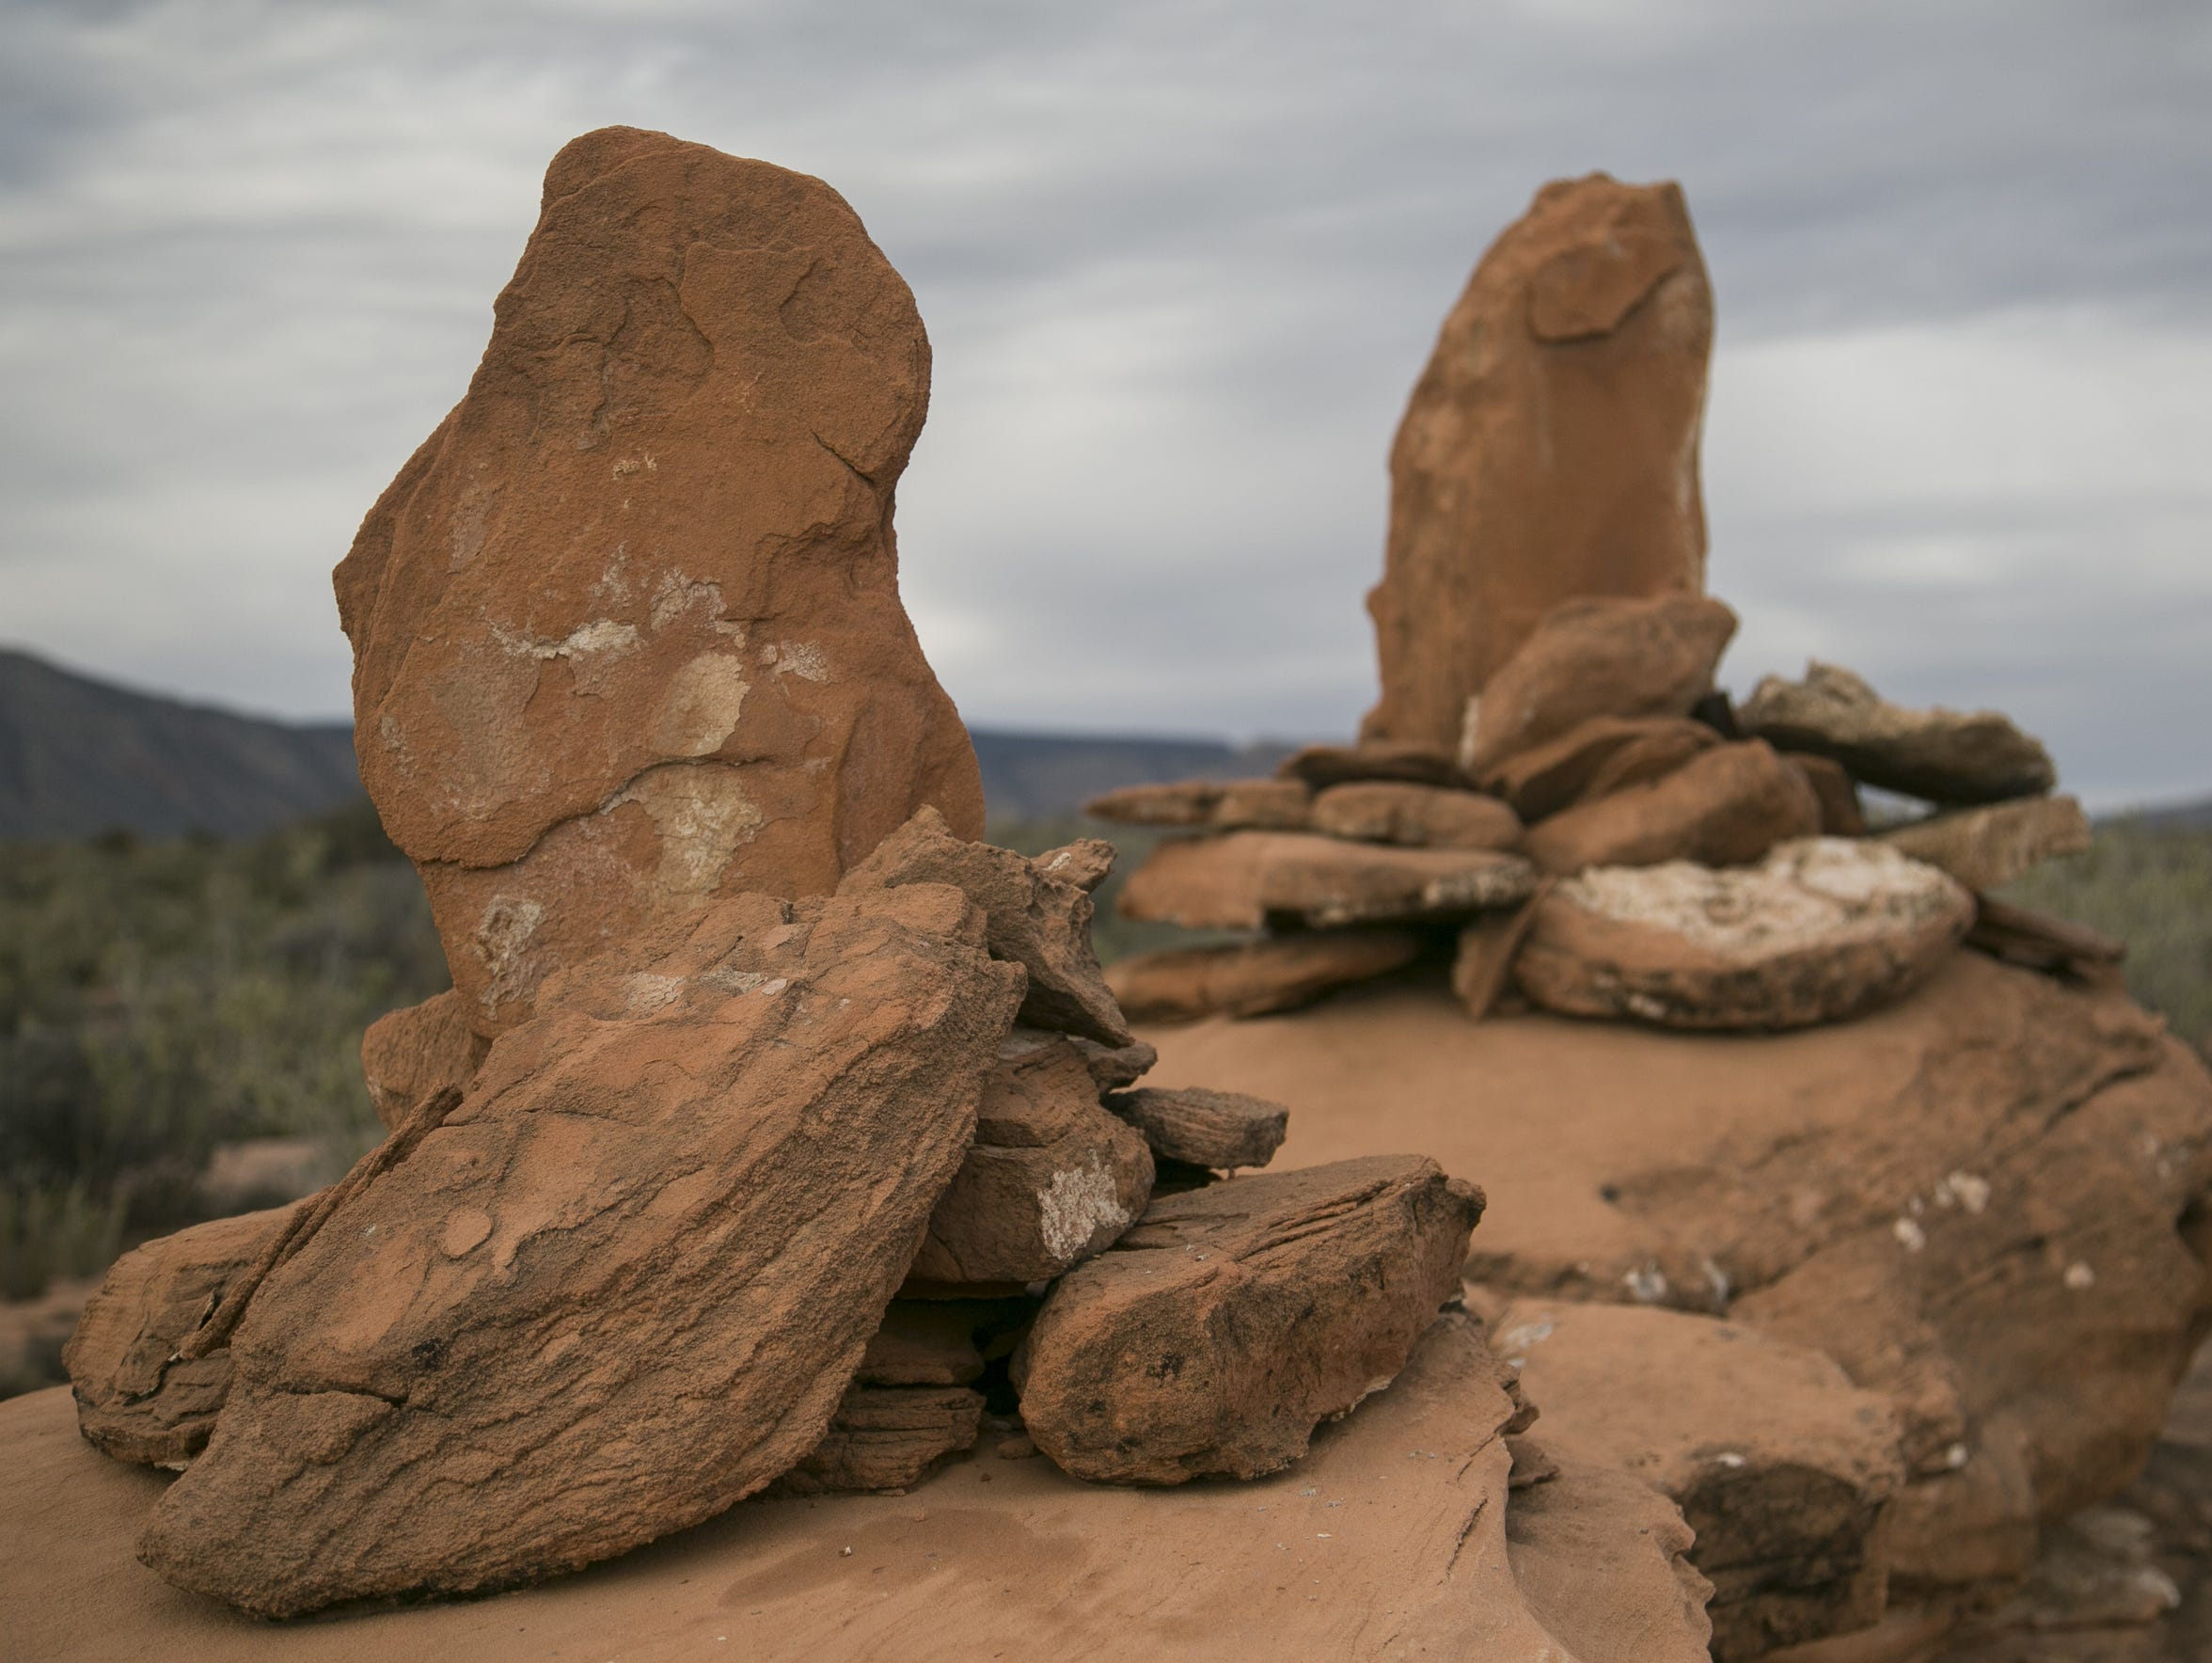 Rock cairns were used to mark mining claims in the